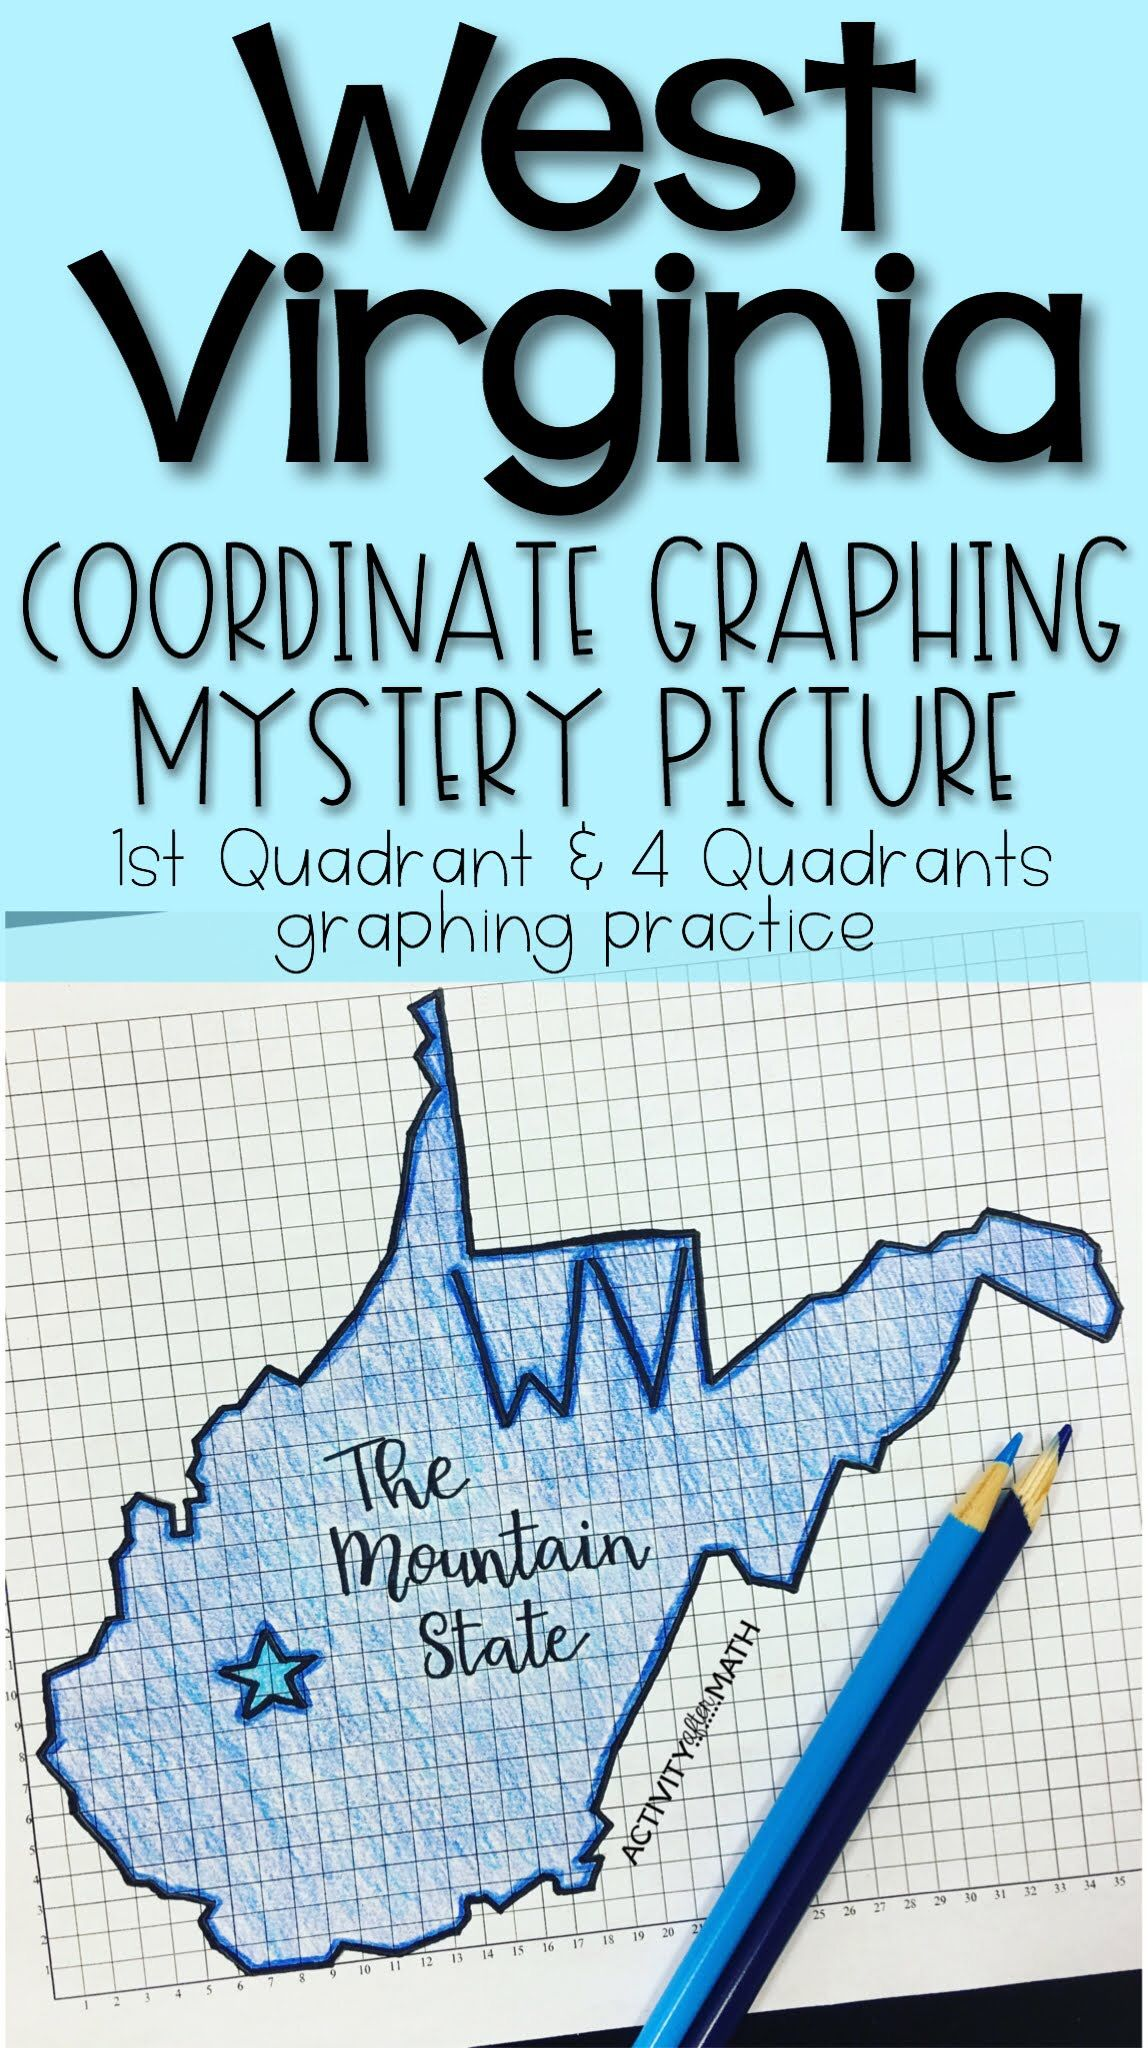 West Virginia Coordinate Graphing Picture 1st Quadrant